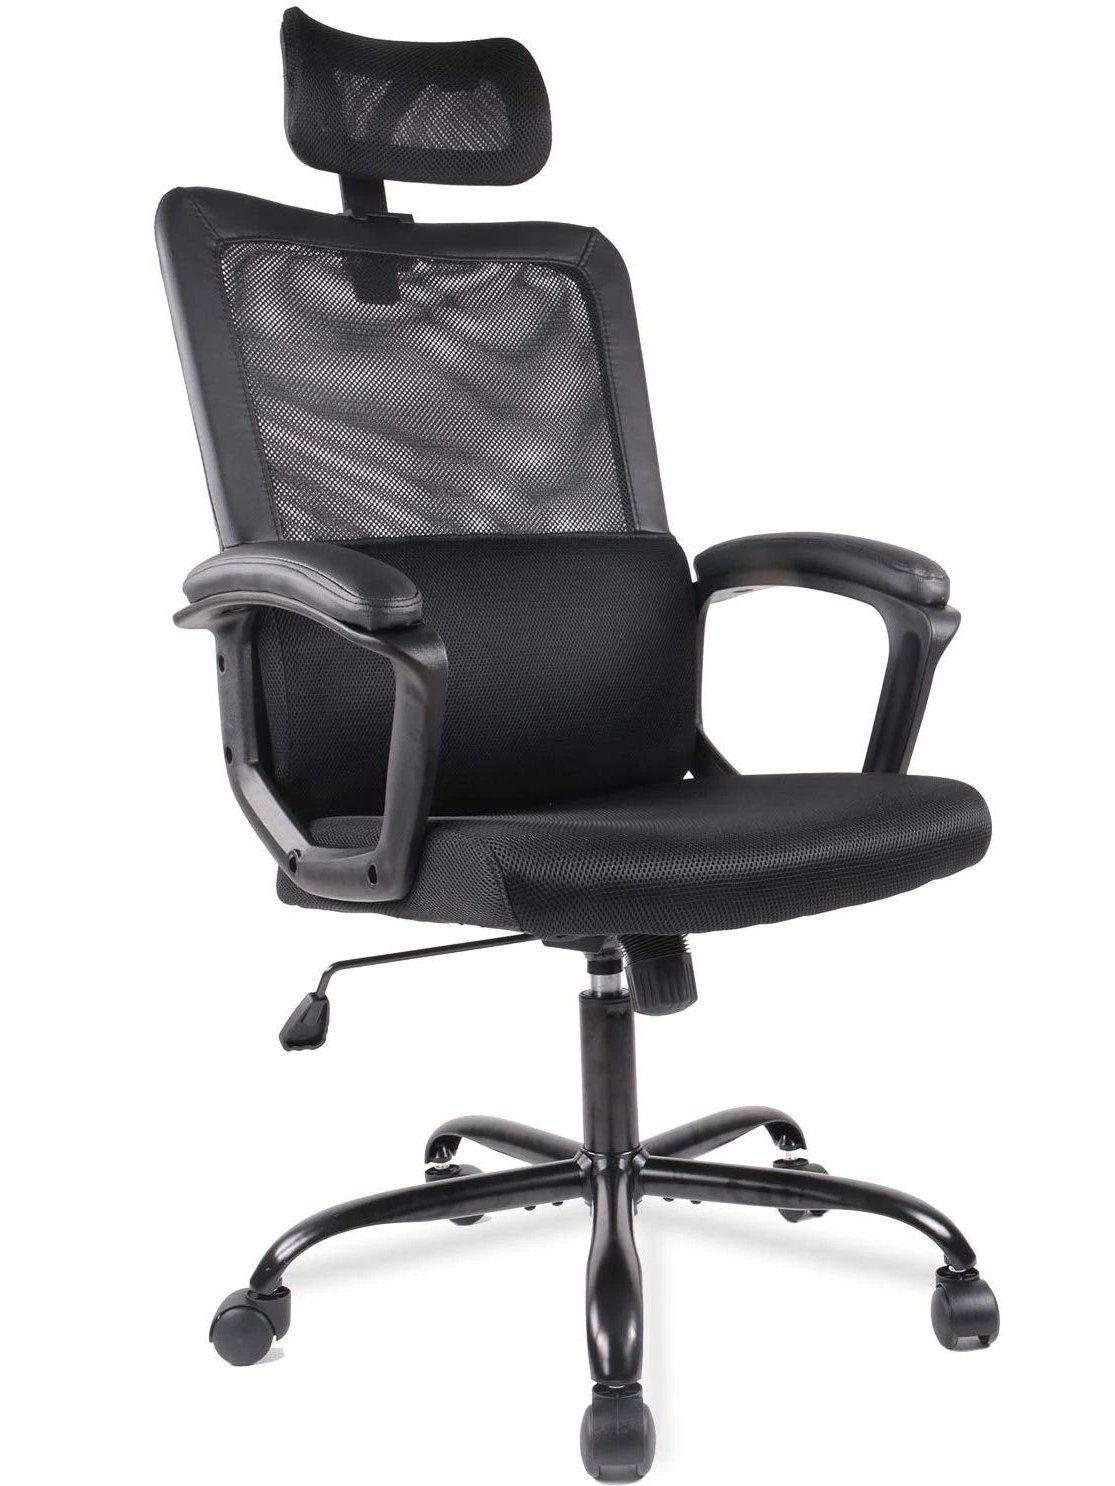 Smugdesk Office Chair, The Best Chairs Ever! in 2020